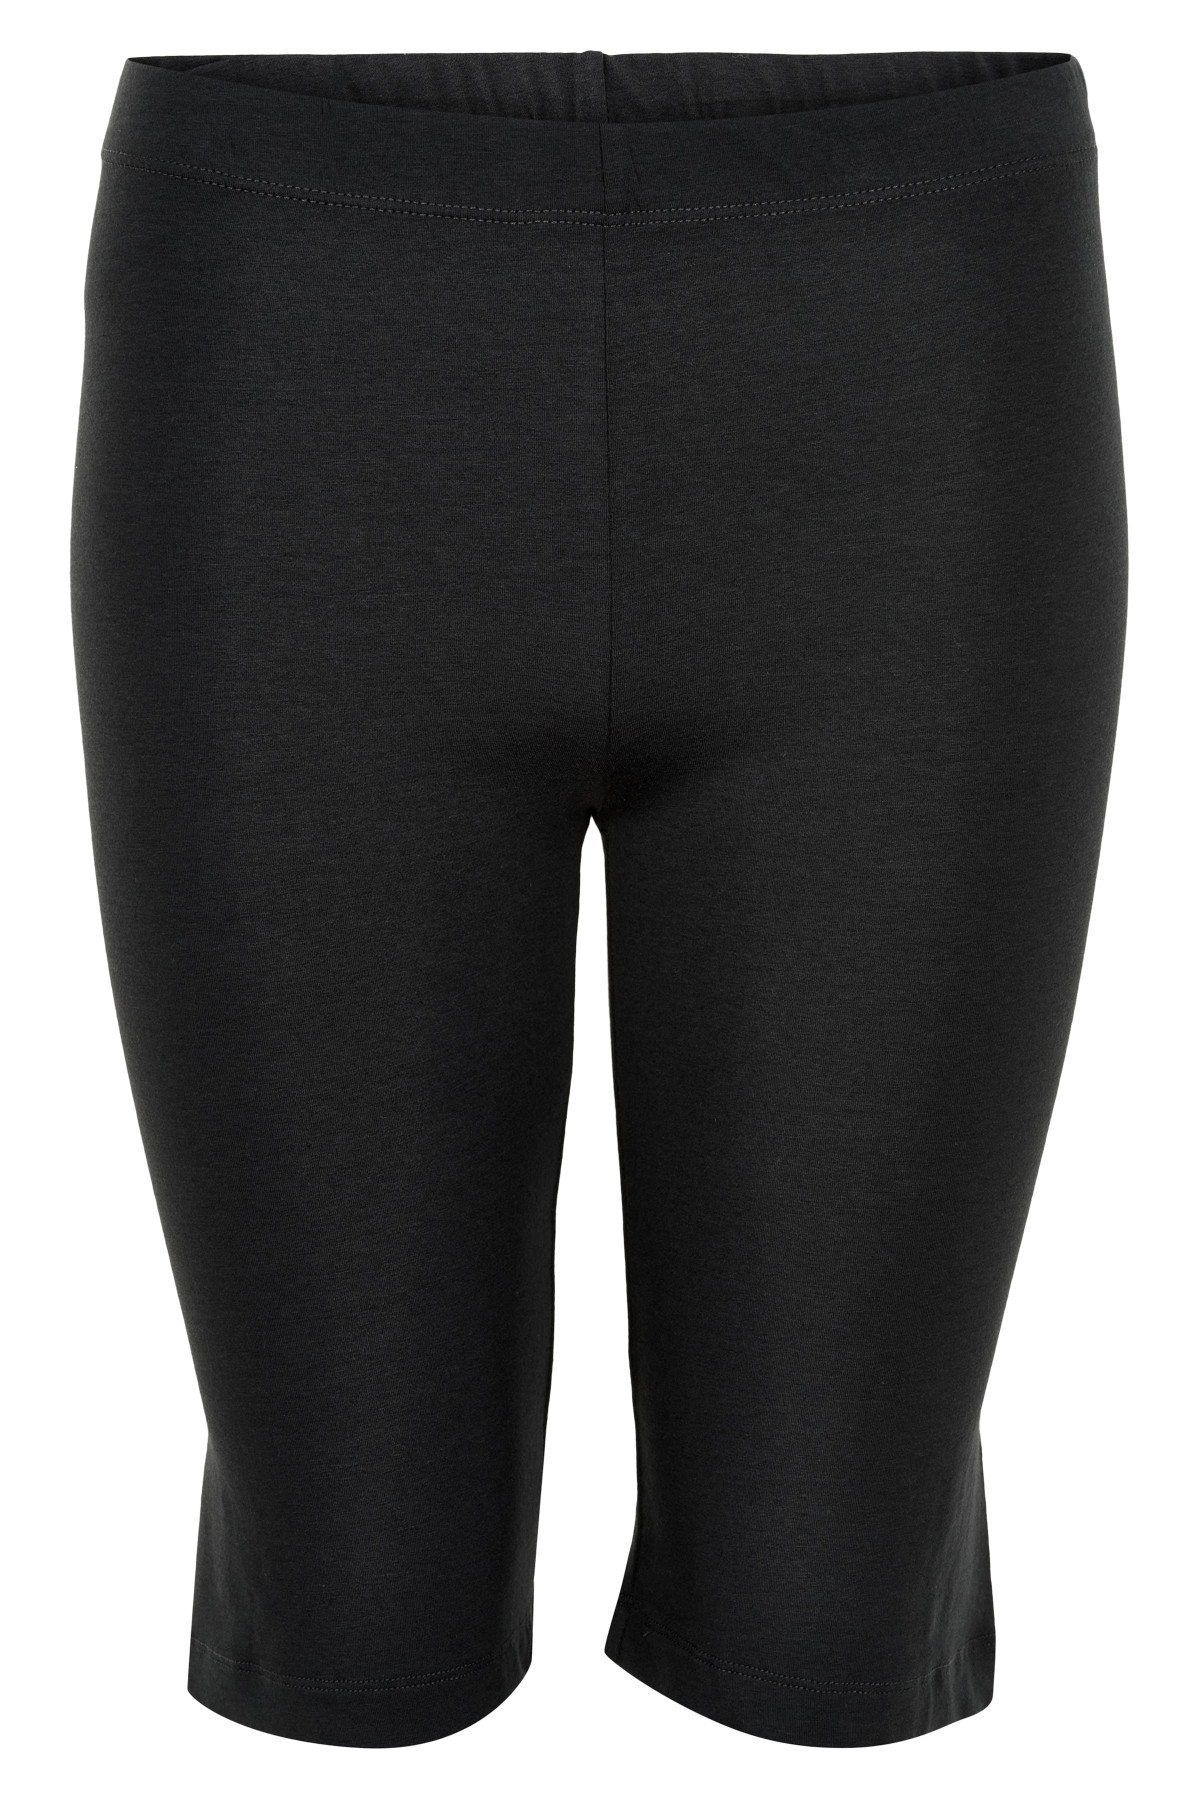 NOA NOA SHORT LEGGINGS 1-9435-2 00000 (Black, M)